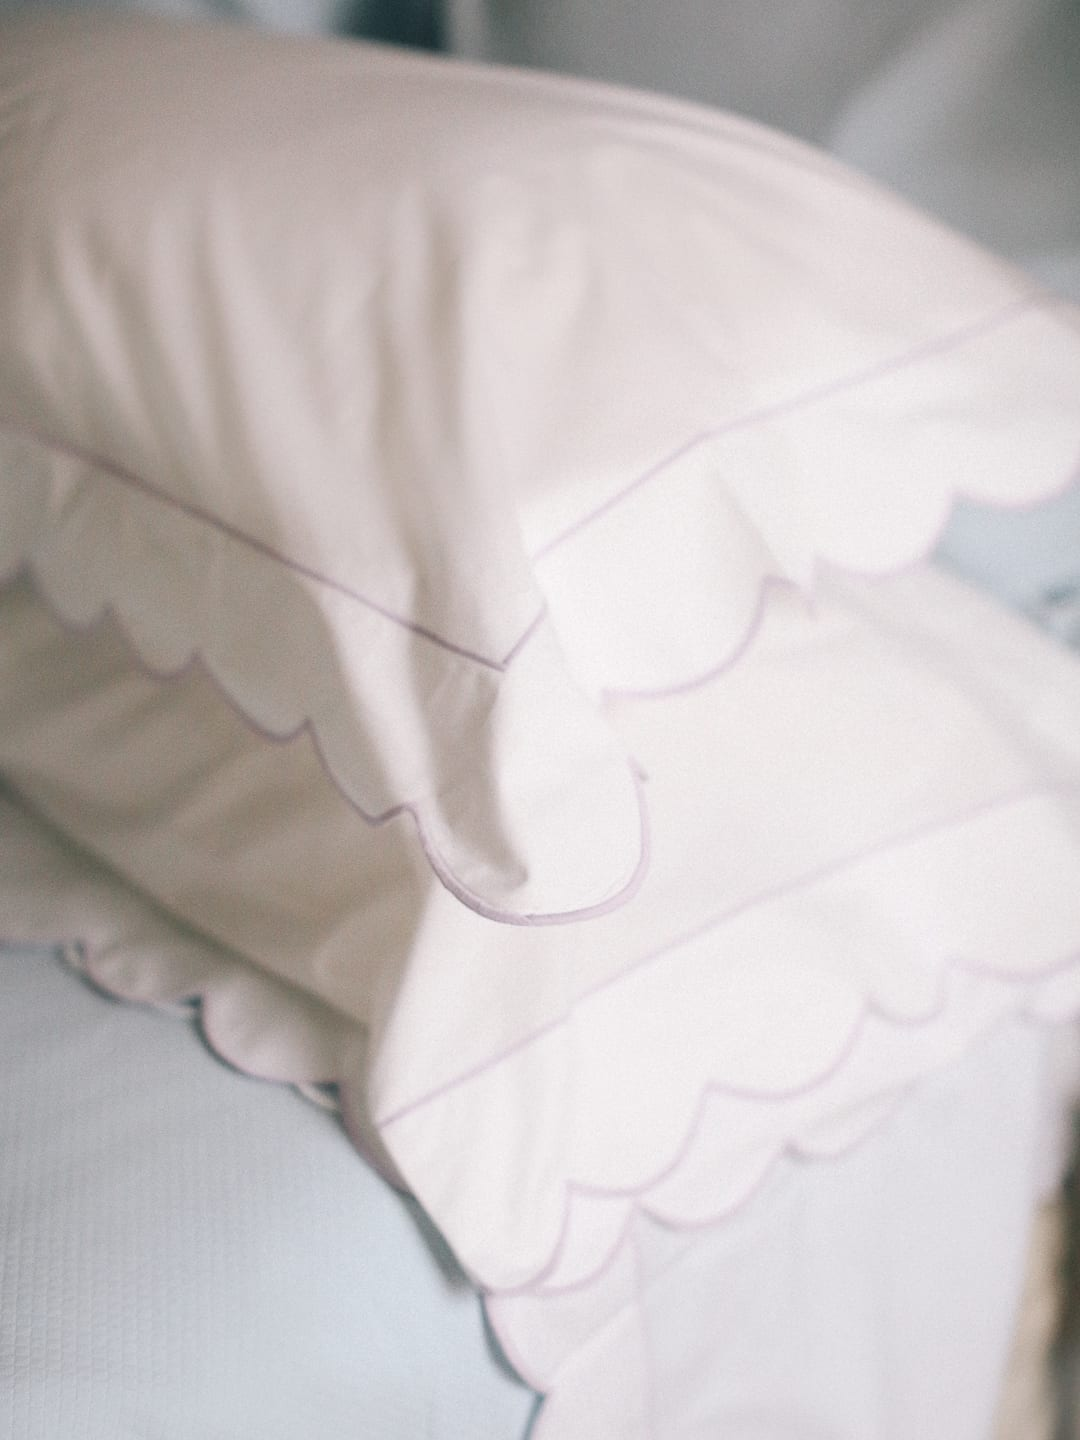 Dreamy Bedding with Matouk - White pillows with scalloped edges on a bed